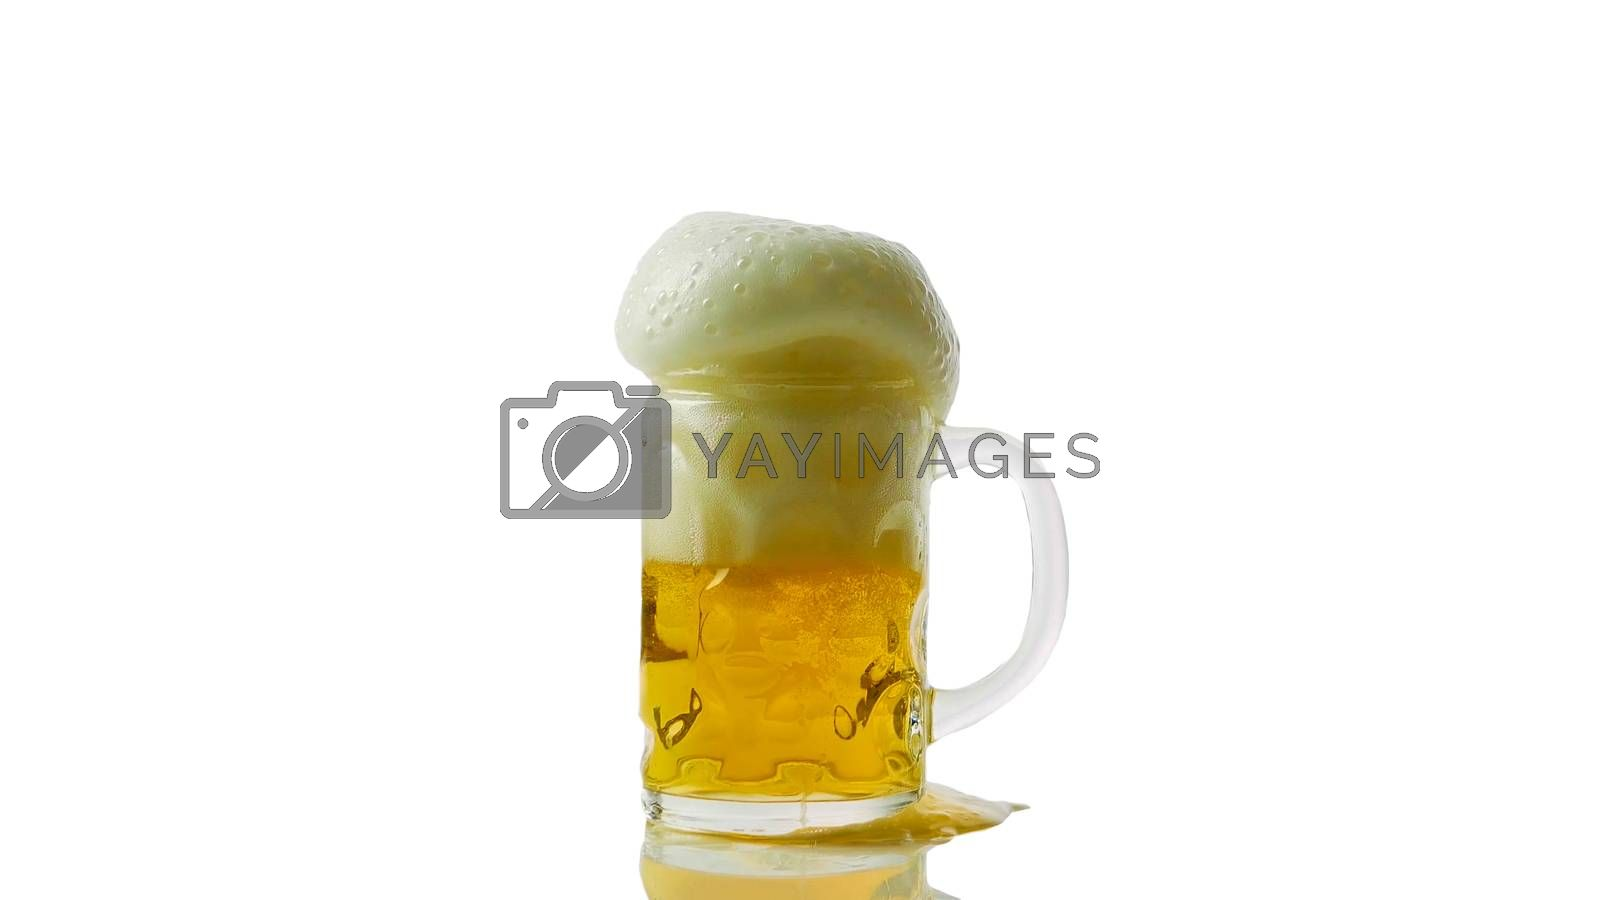 Royalty free image of Foamy beer in a glass isolated on white close-up,light beer fresh. by Andriii_Klapkoo